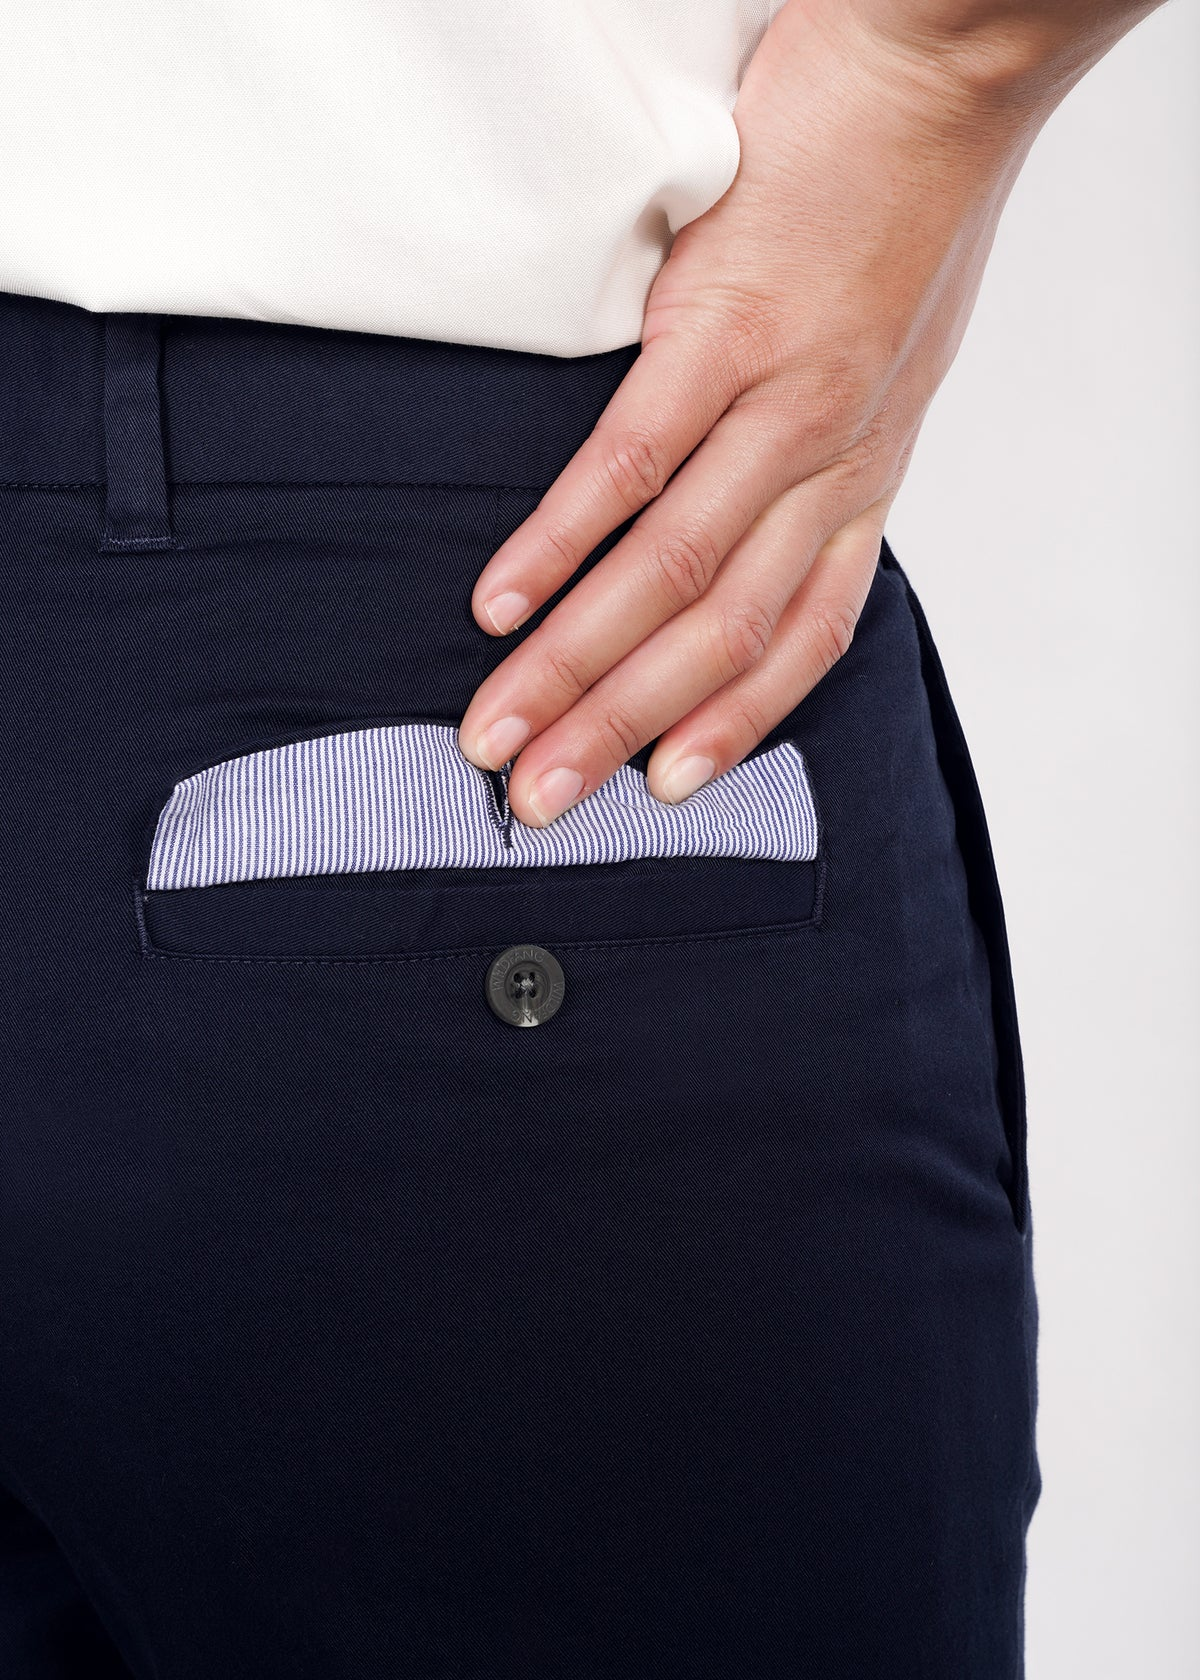 Hand holding open back pocket flap to show pinstripe interior lining and welted pocket with button, on navy trouser pants